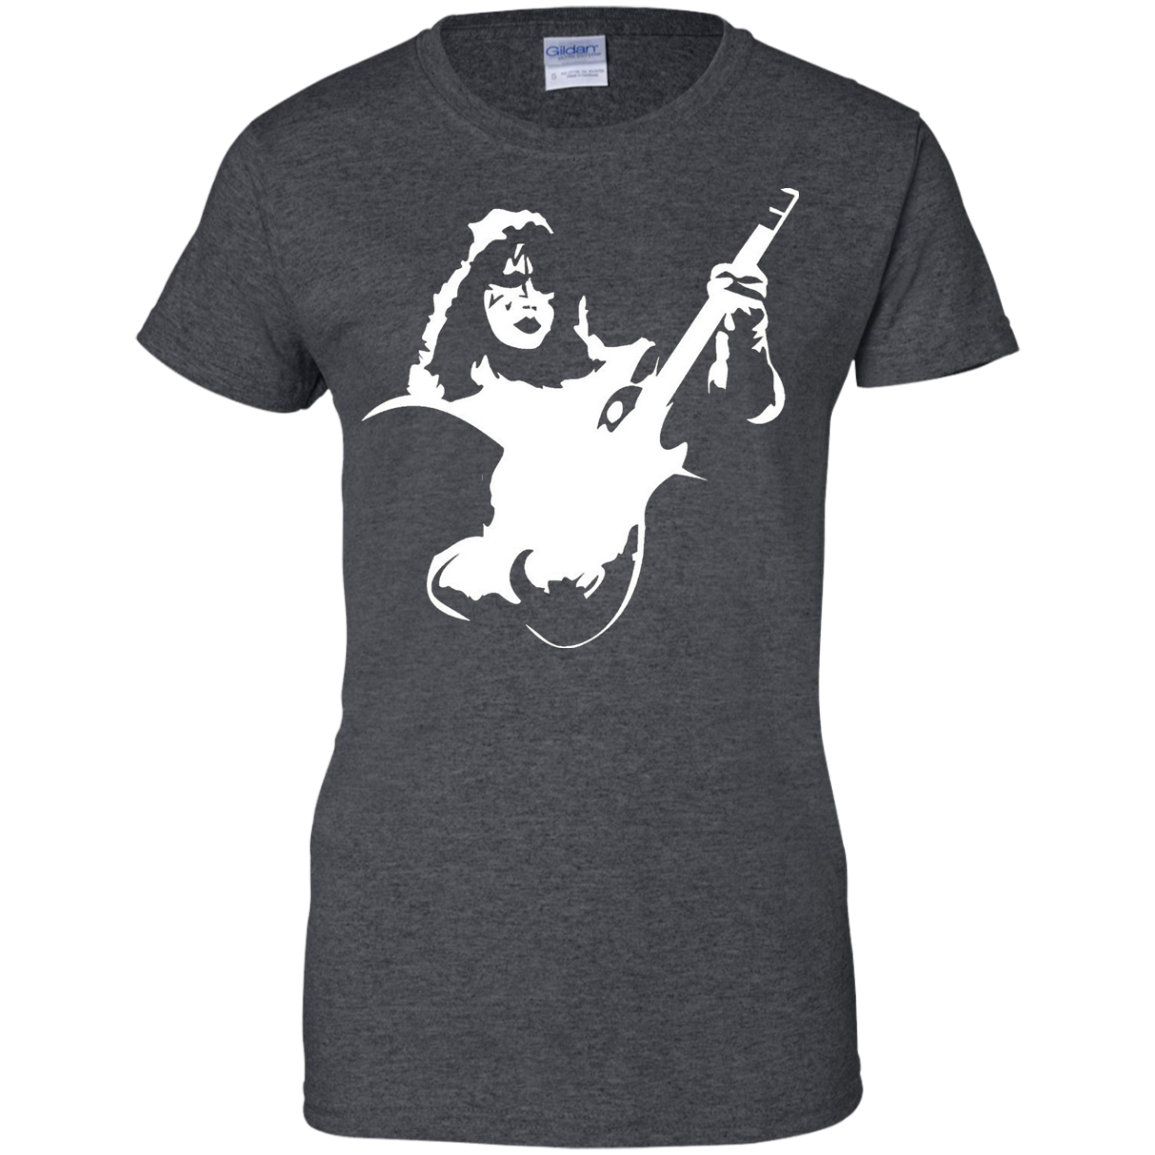 ace frehley t shirt - ace frehley shirt